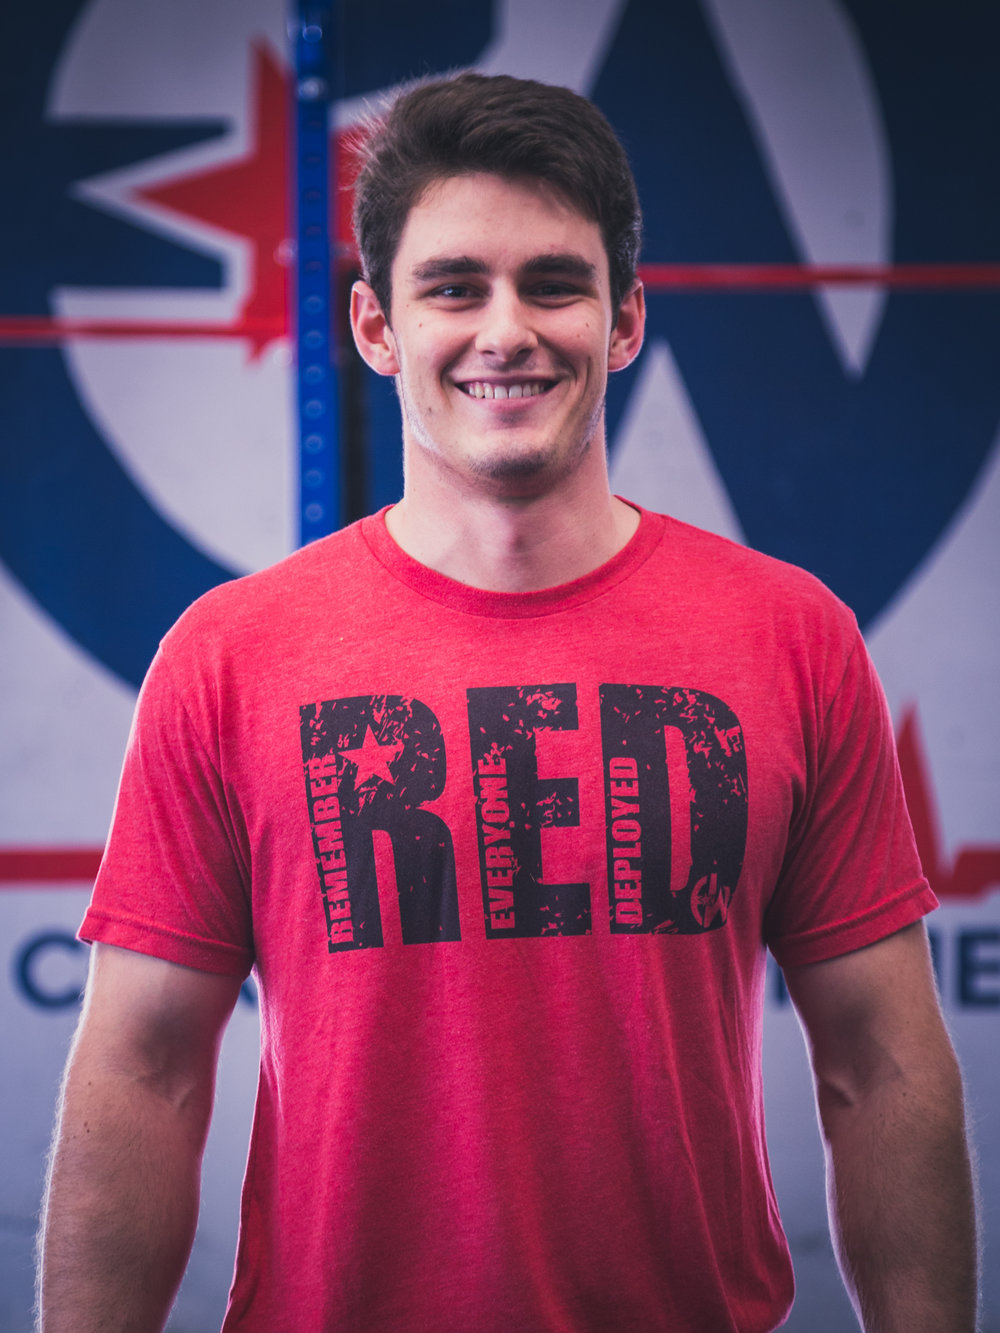 Logan Sepanek Head Coach | PersonalFIT